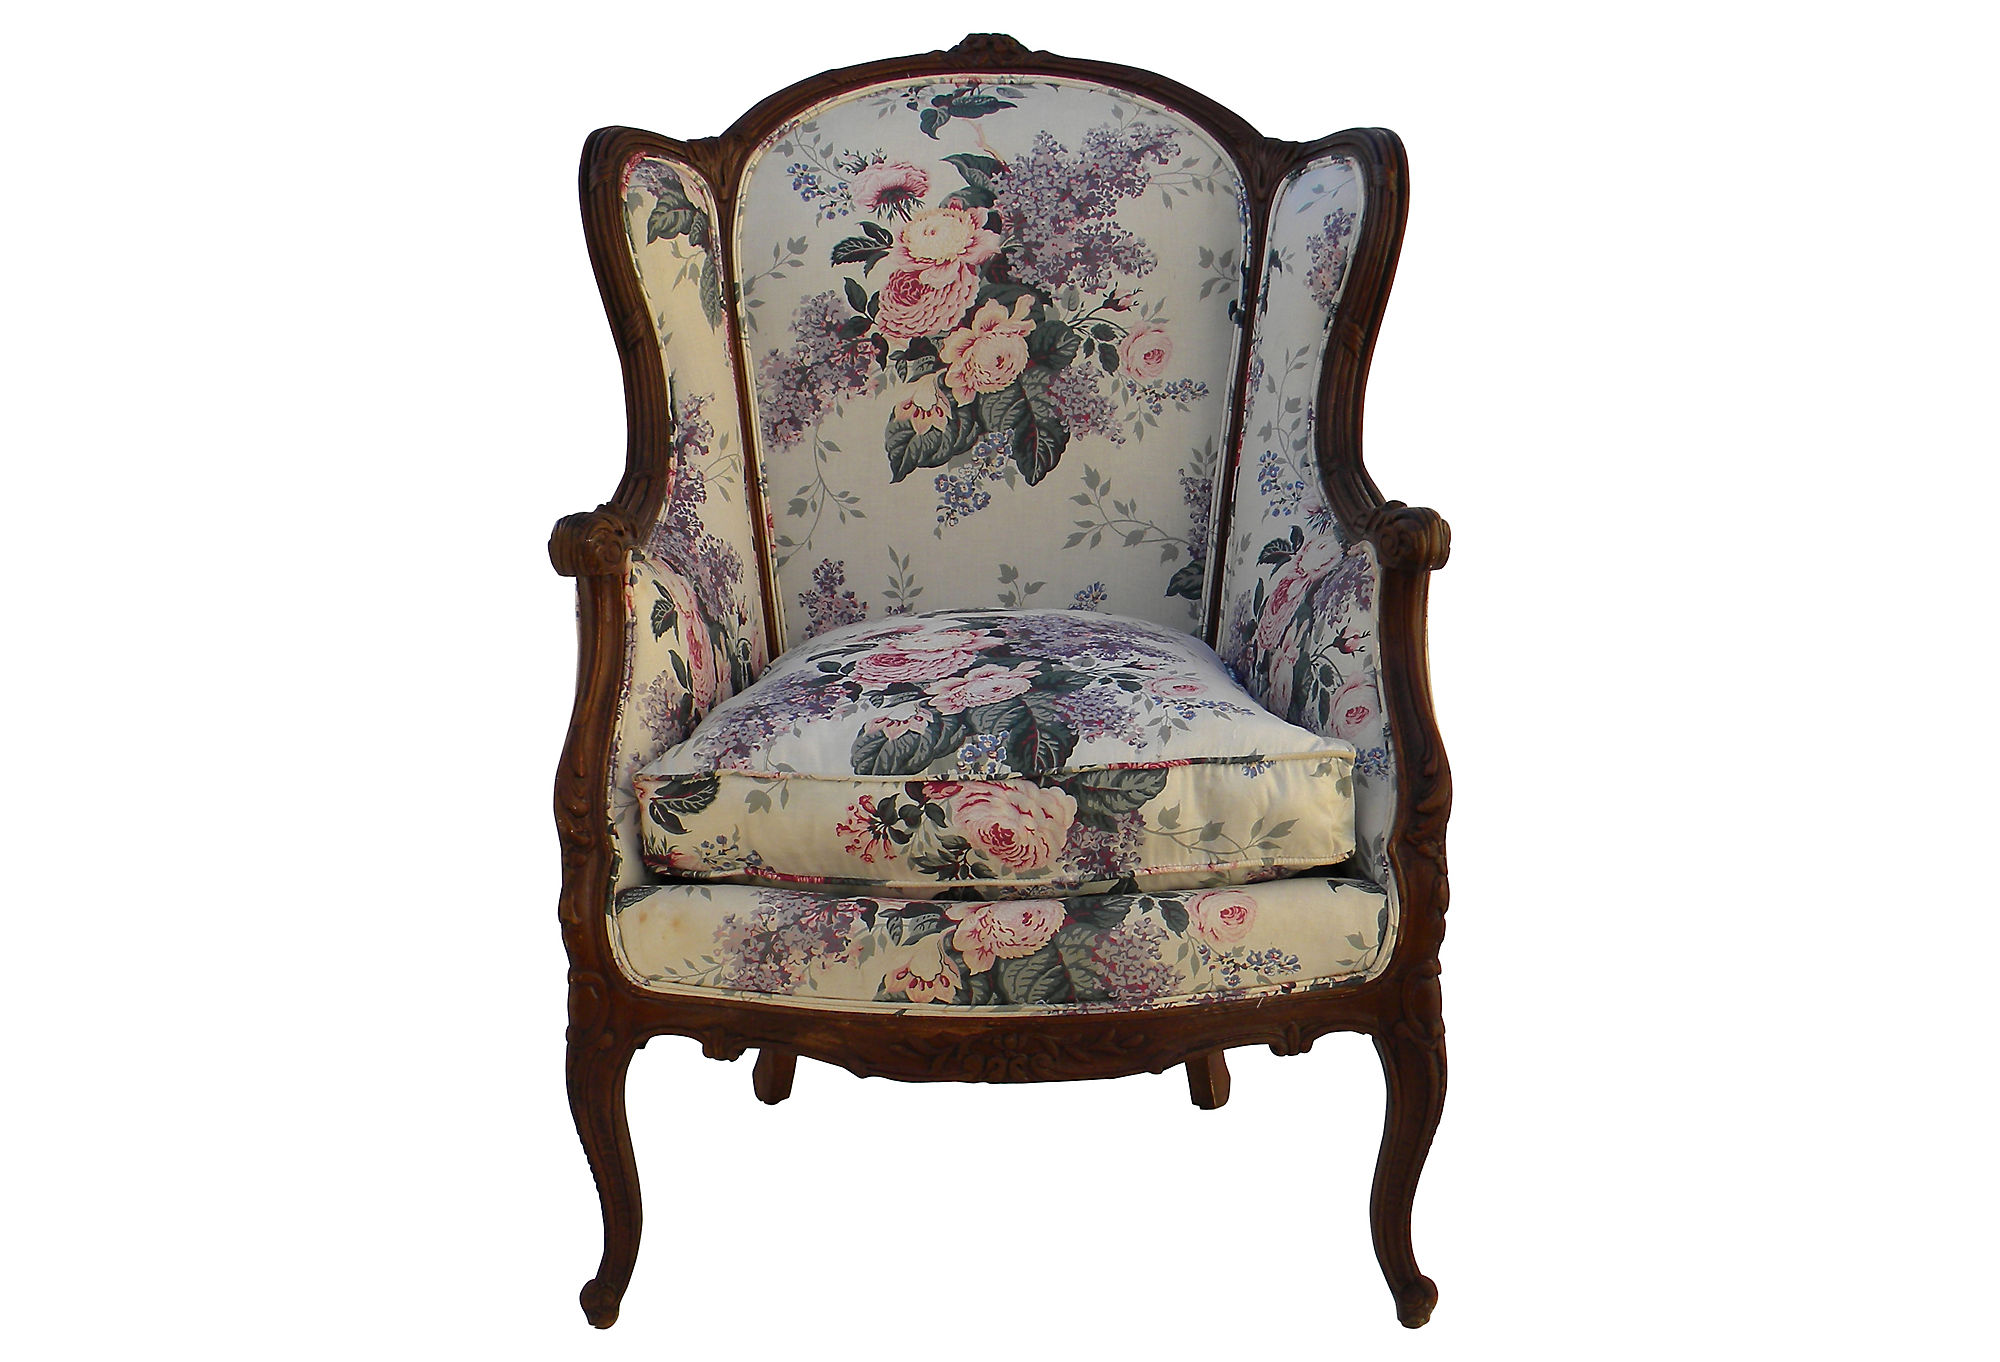 one kings lane chairs posture chair gumtree upholstered wingback from